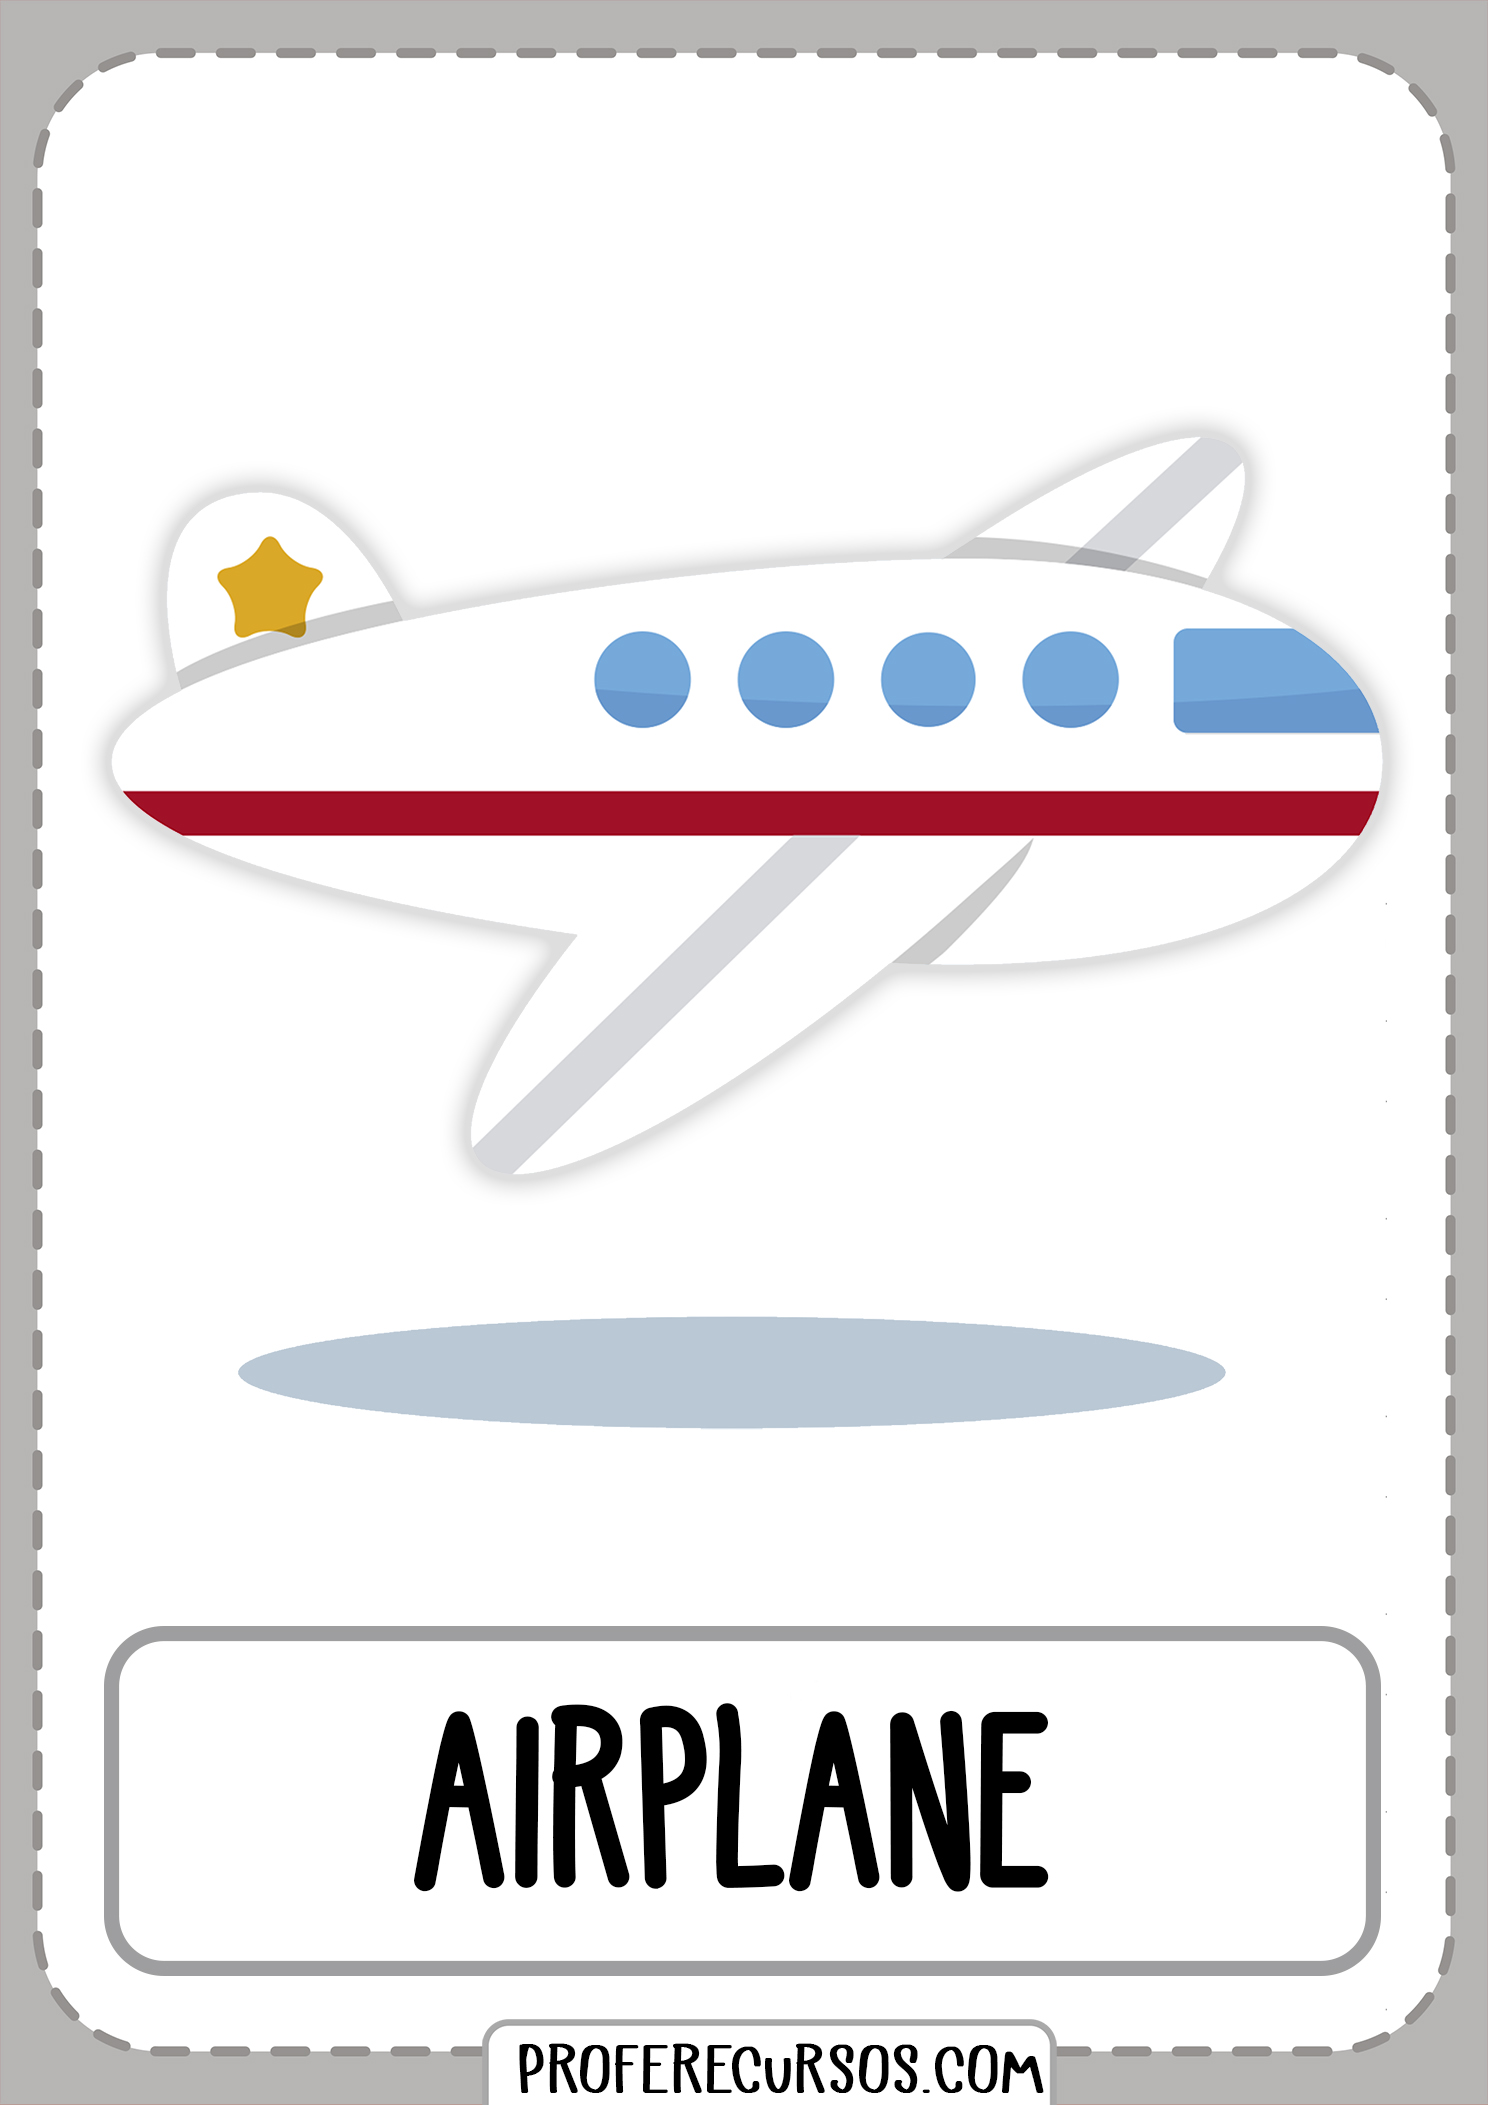 Means-of-transport-vocabulary-airplane